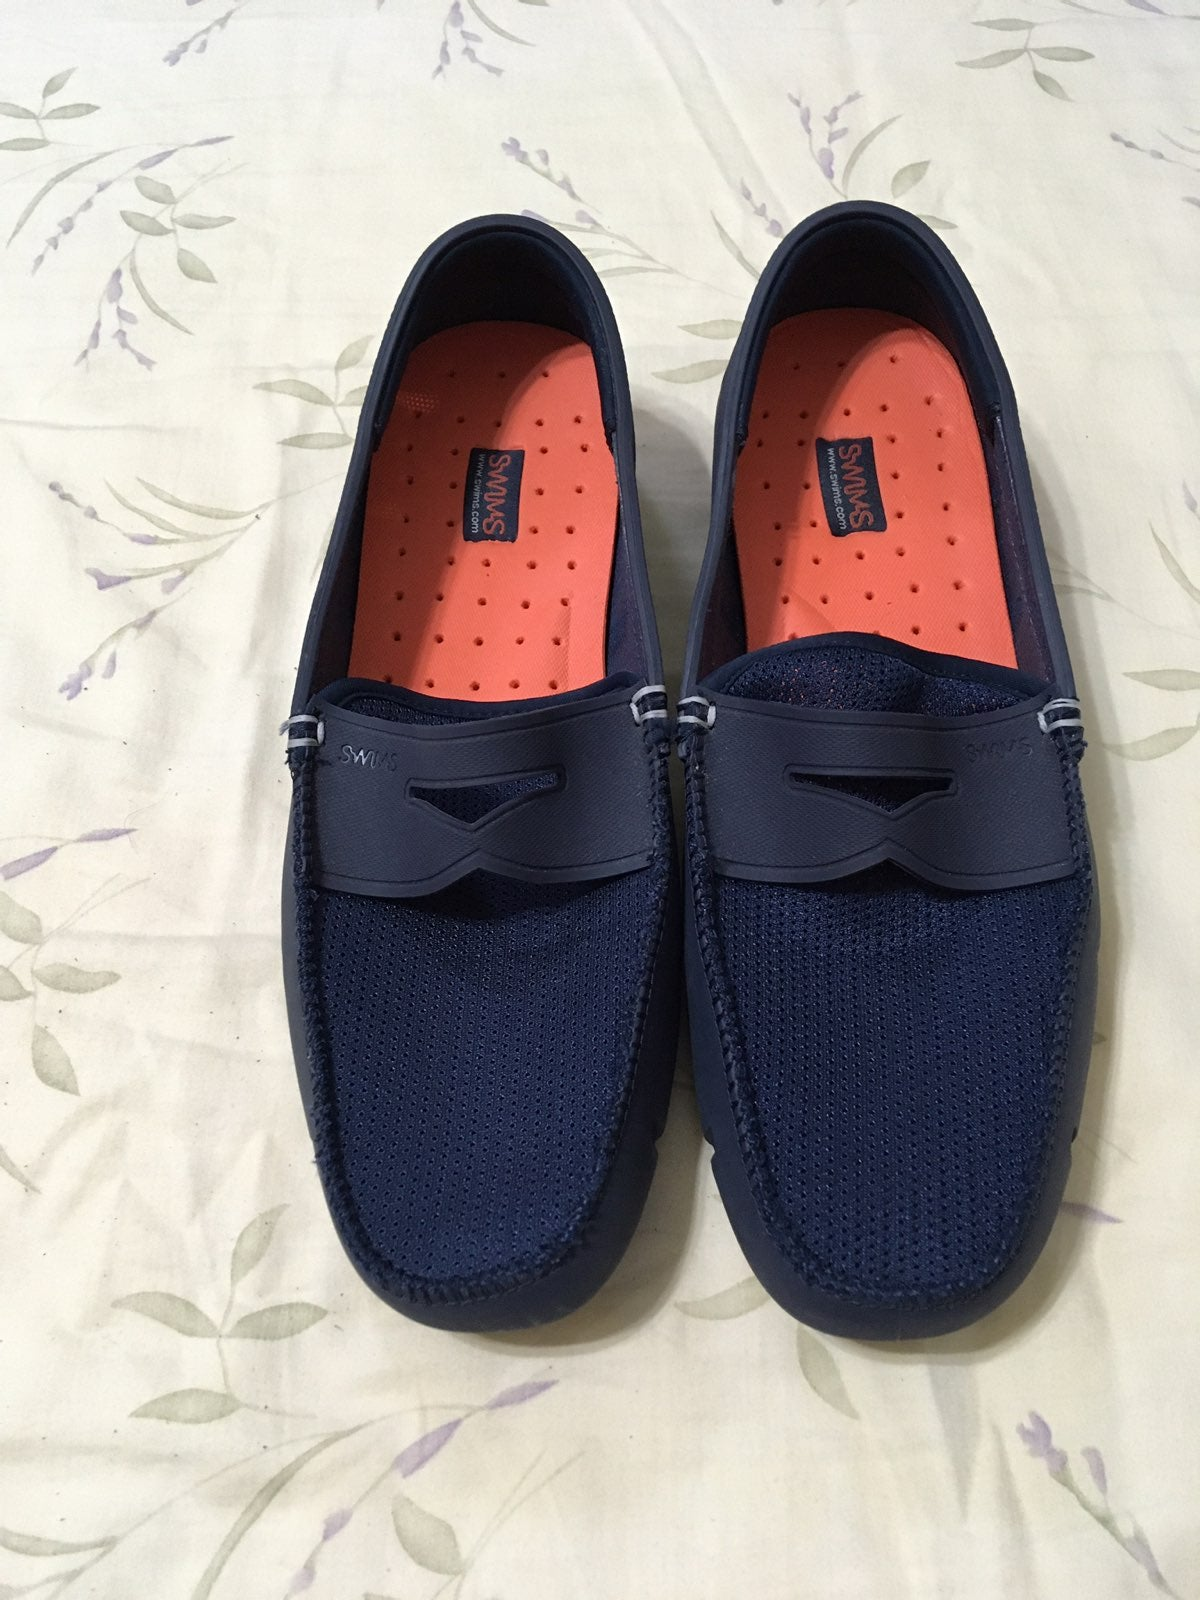 Blue Mesh Rubber Loafers